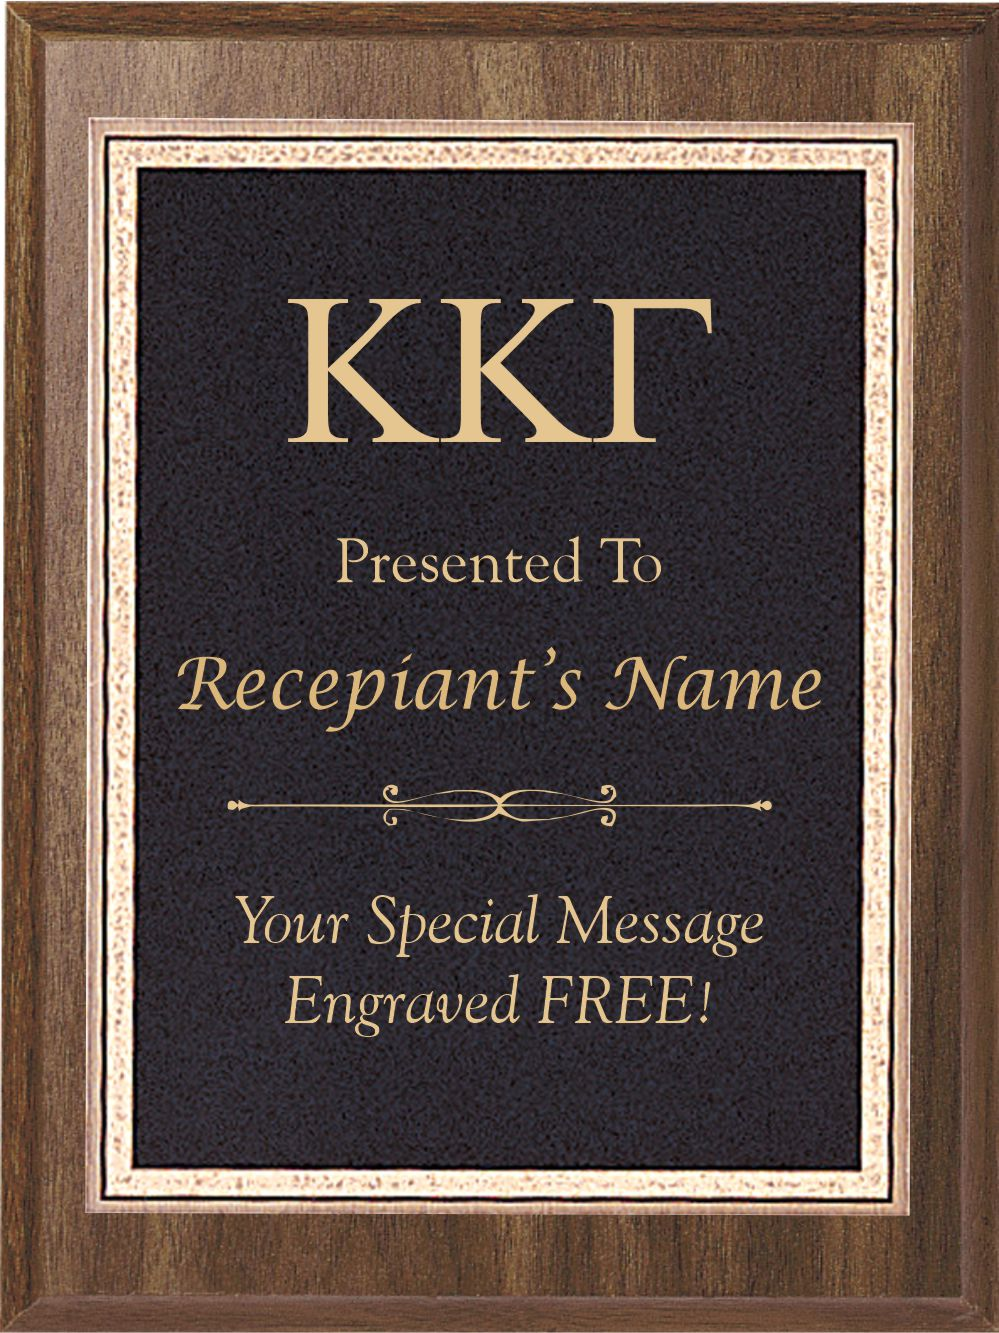 Kappa Kappa Gamma Awards